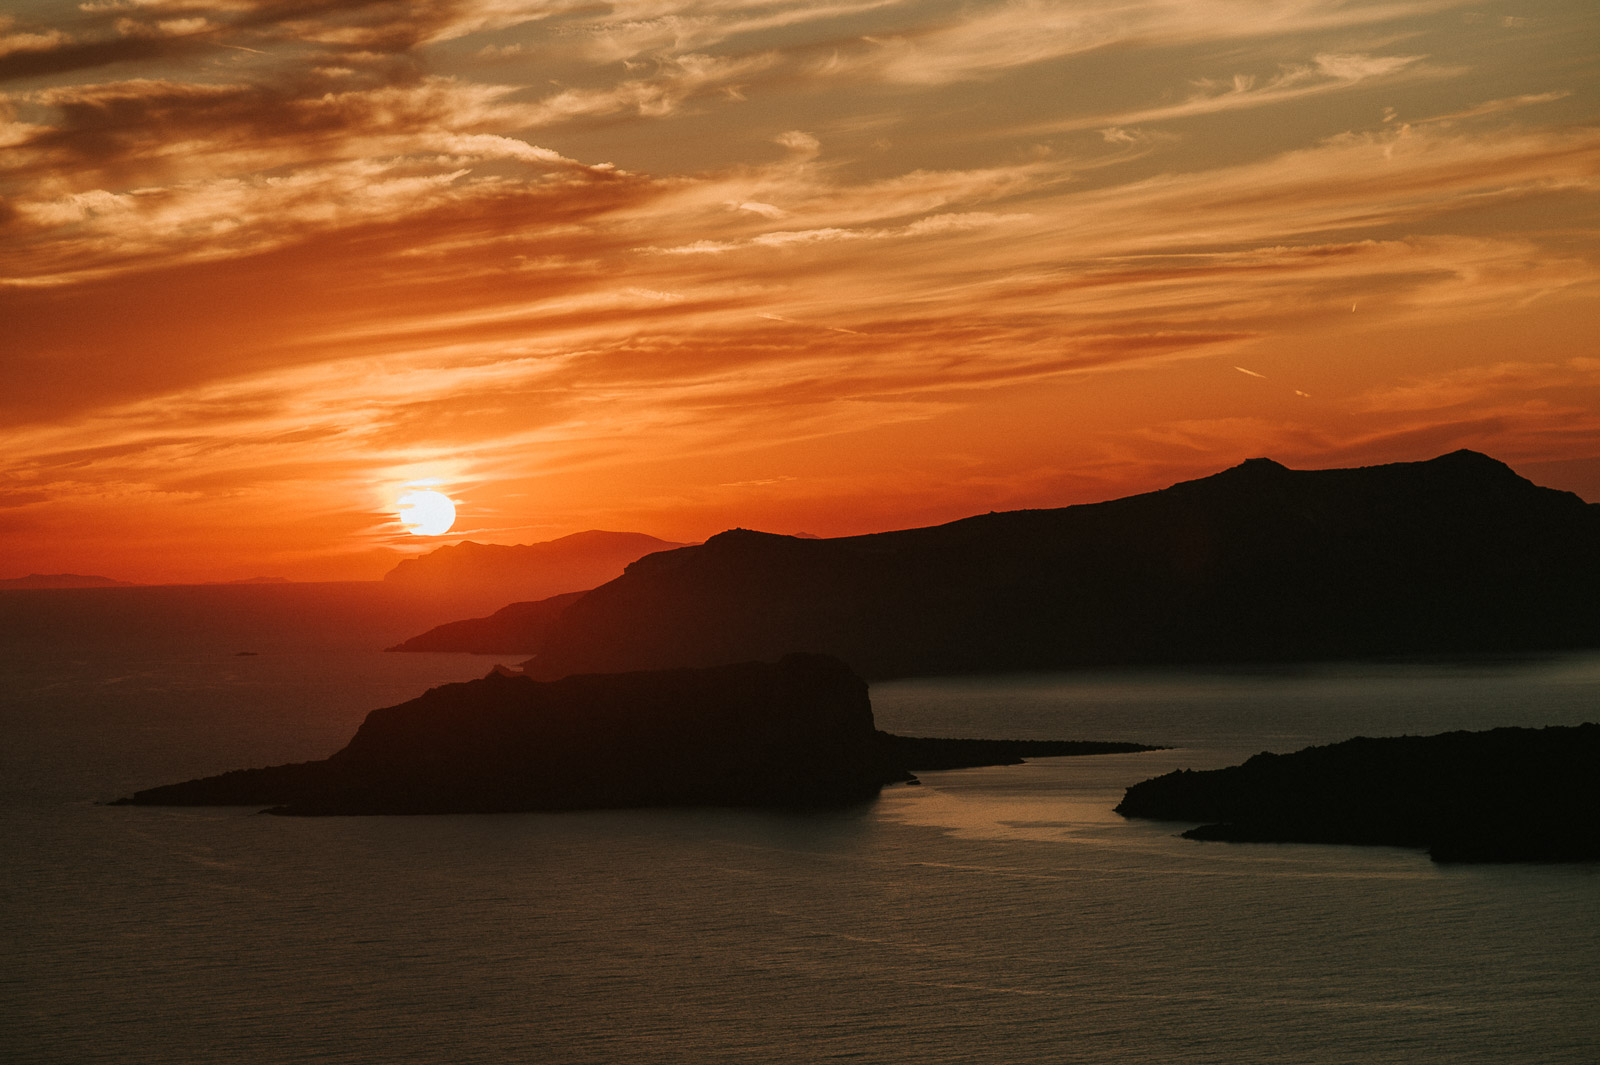 Santorini-Wedding-Photographer-Greece-Destination-Weddings-Mait-Juriado-M&J-Studios-142